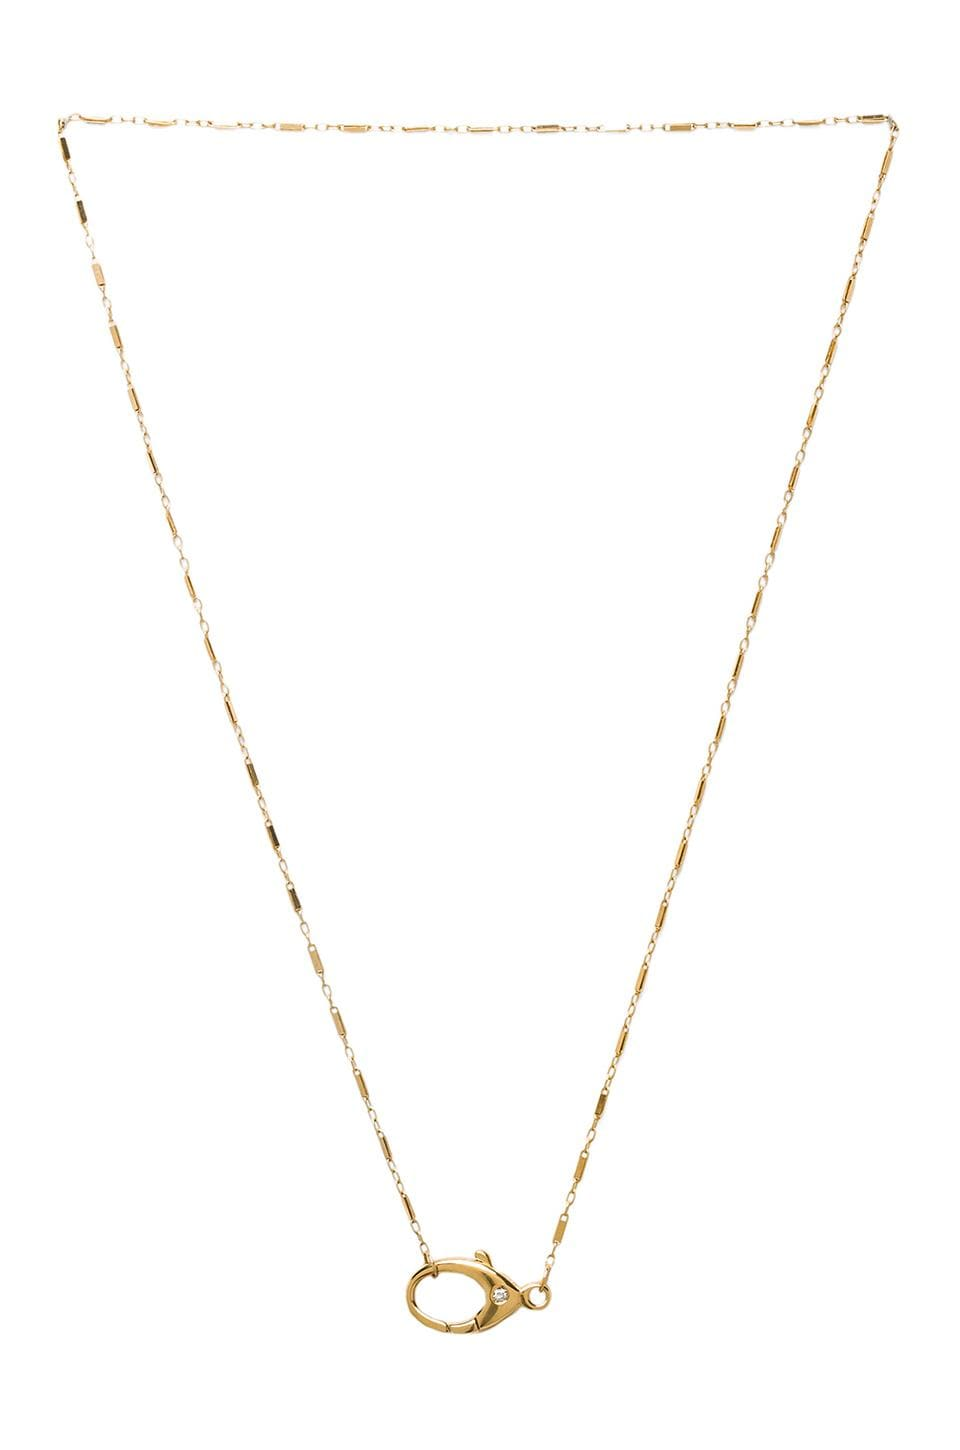 Jennifer Zeuner Harlow Clasp Necklace in Yellow